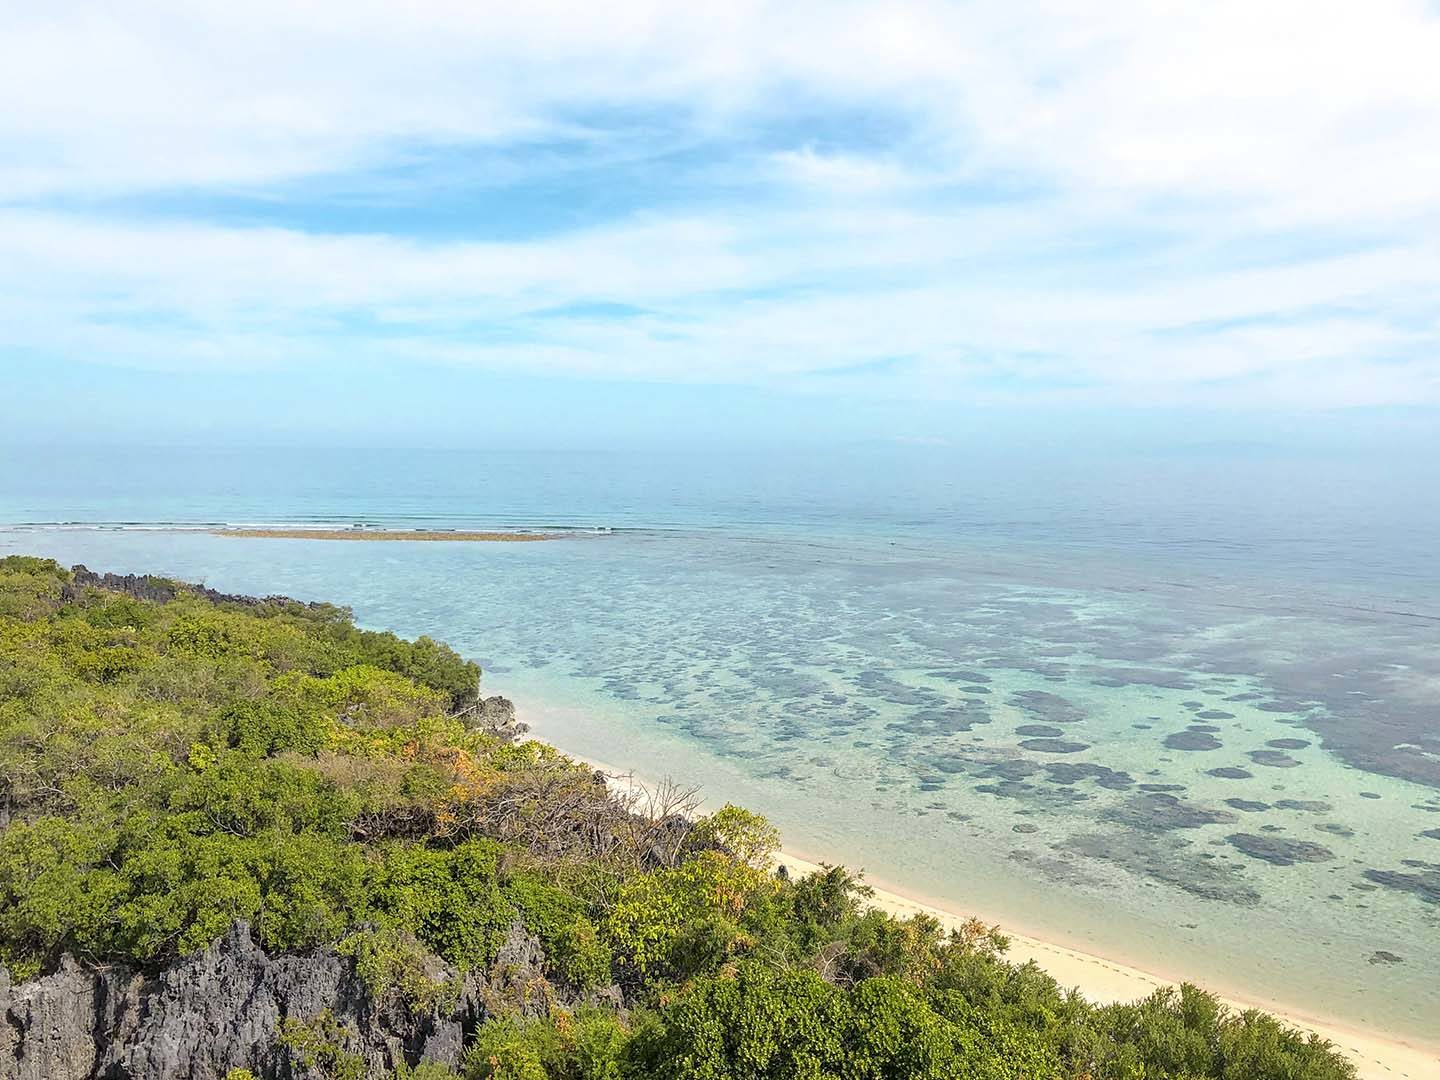 View of Apo Reef from the lighthouse